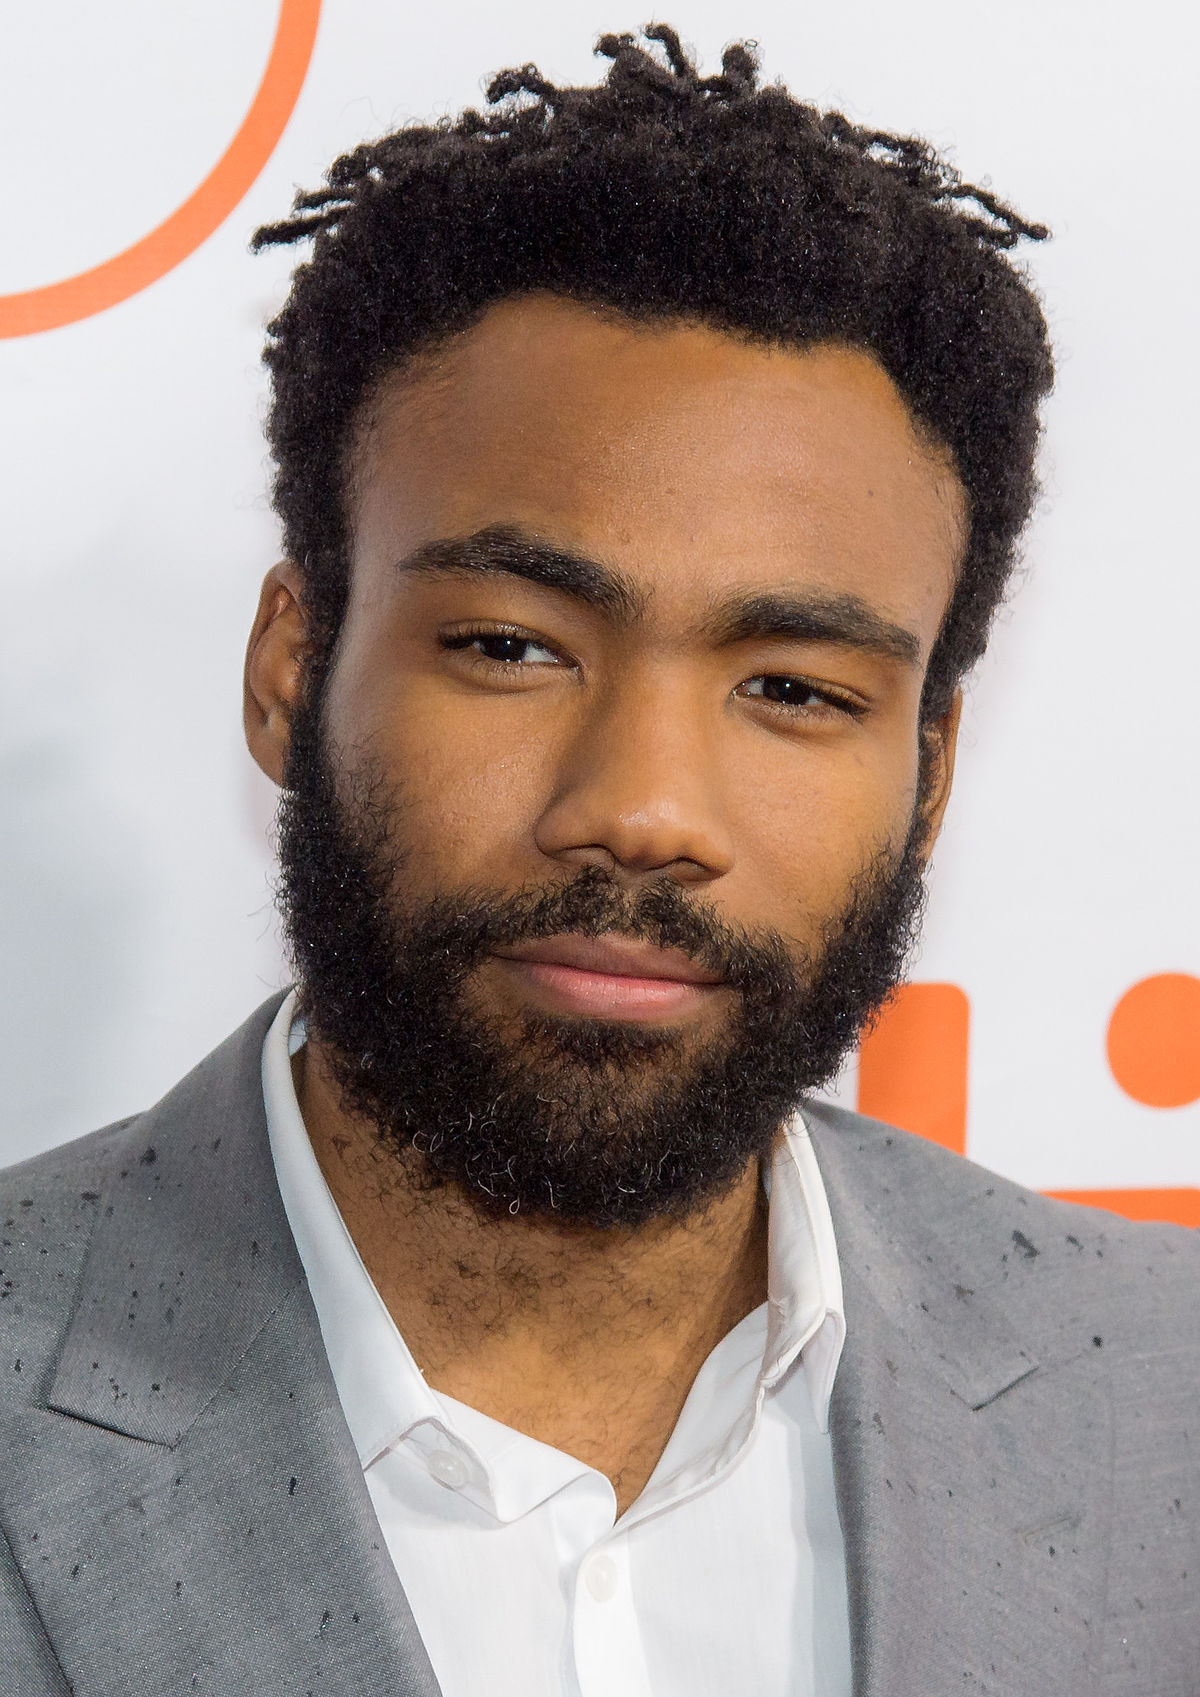 Childish Gambino On Blackness (Eric Washington)